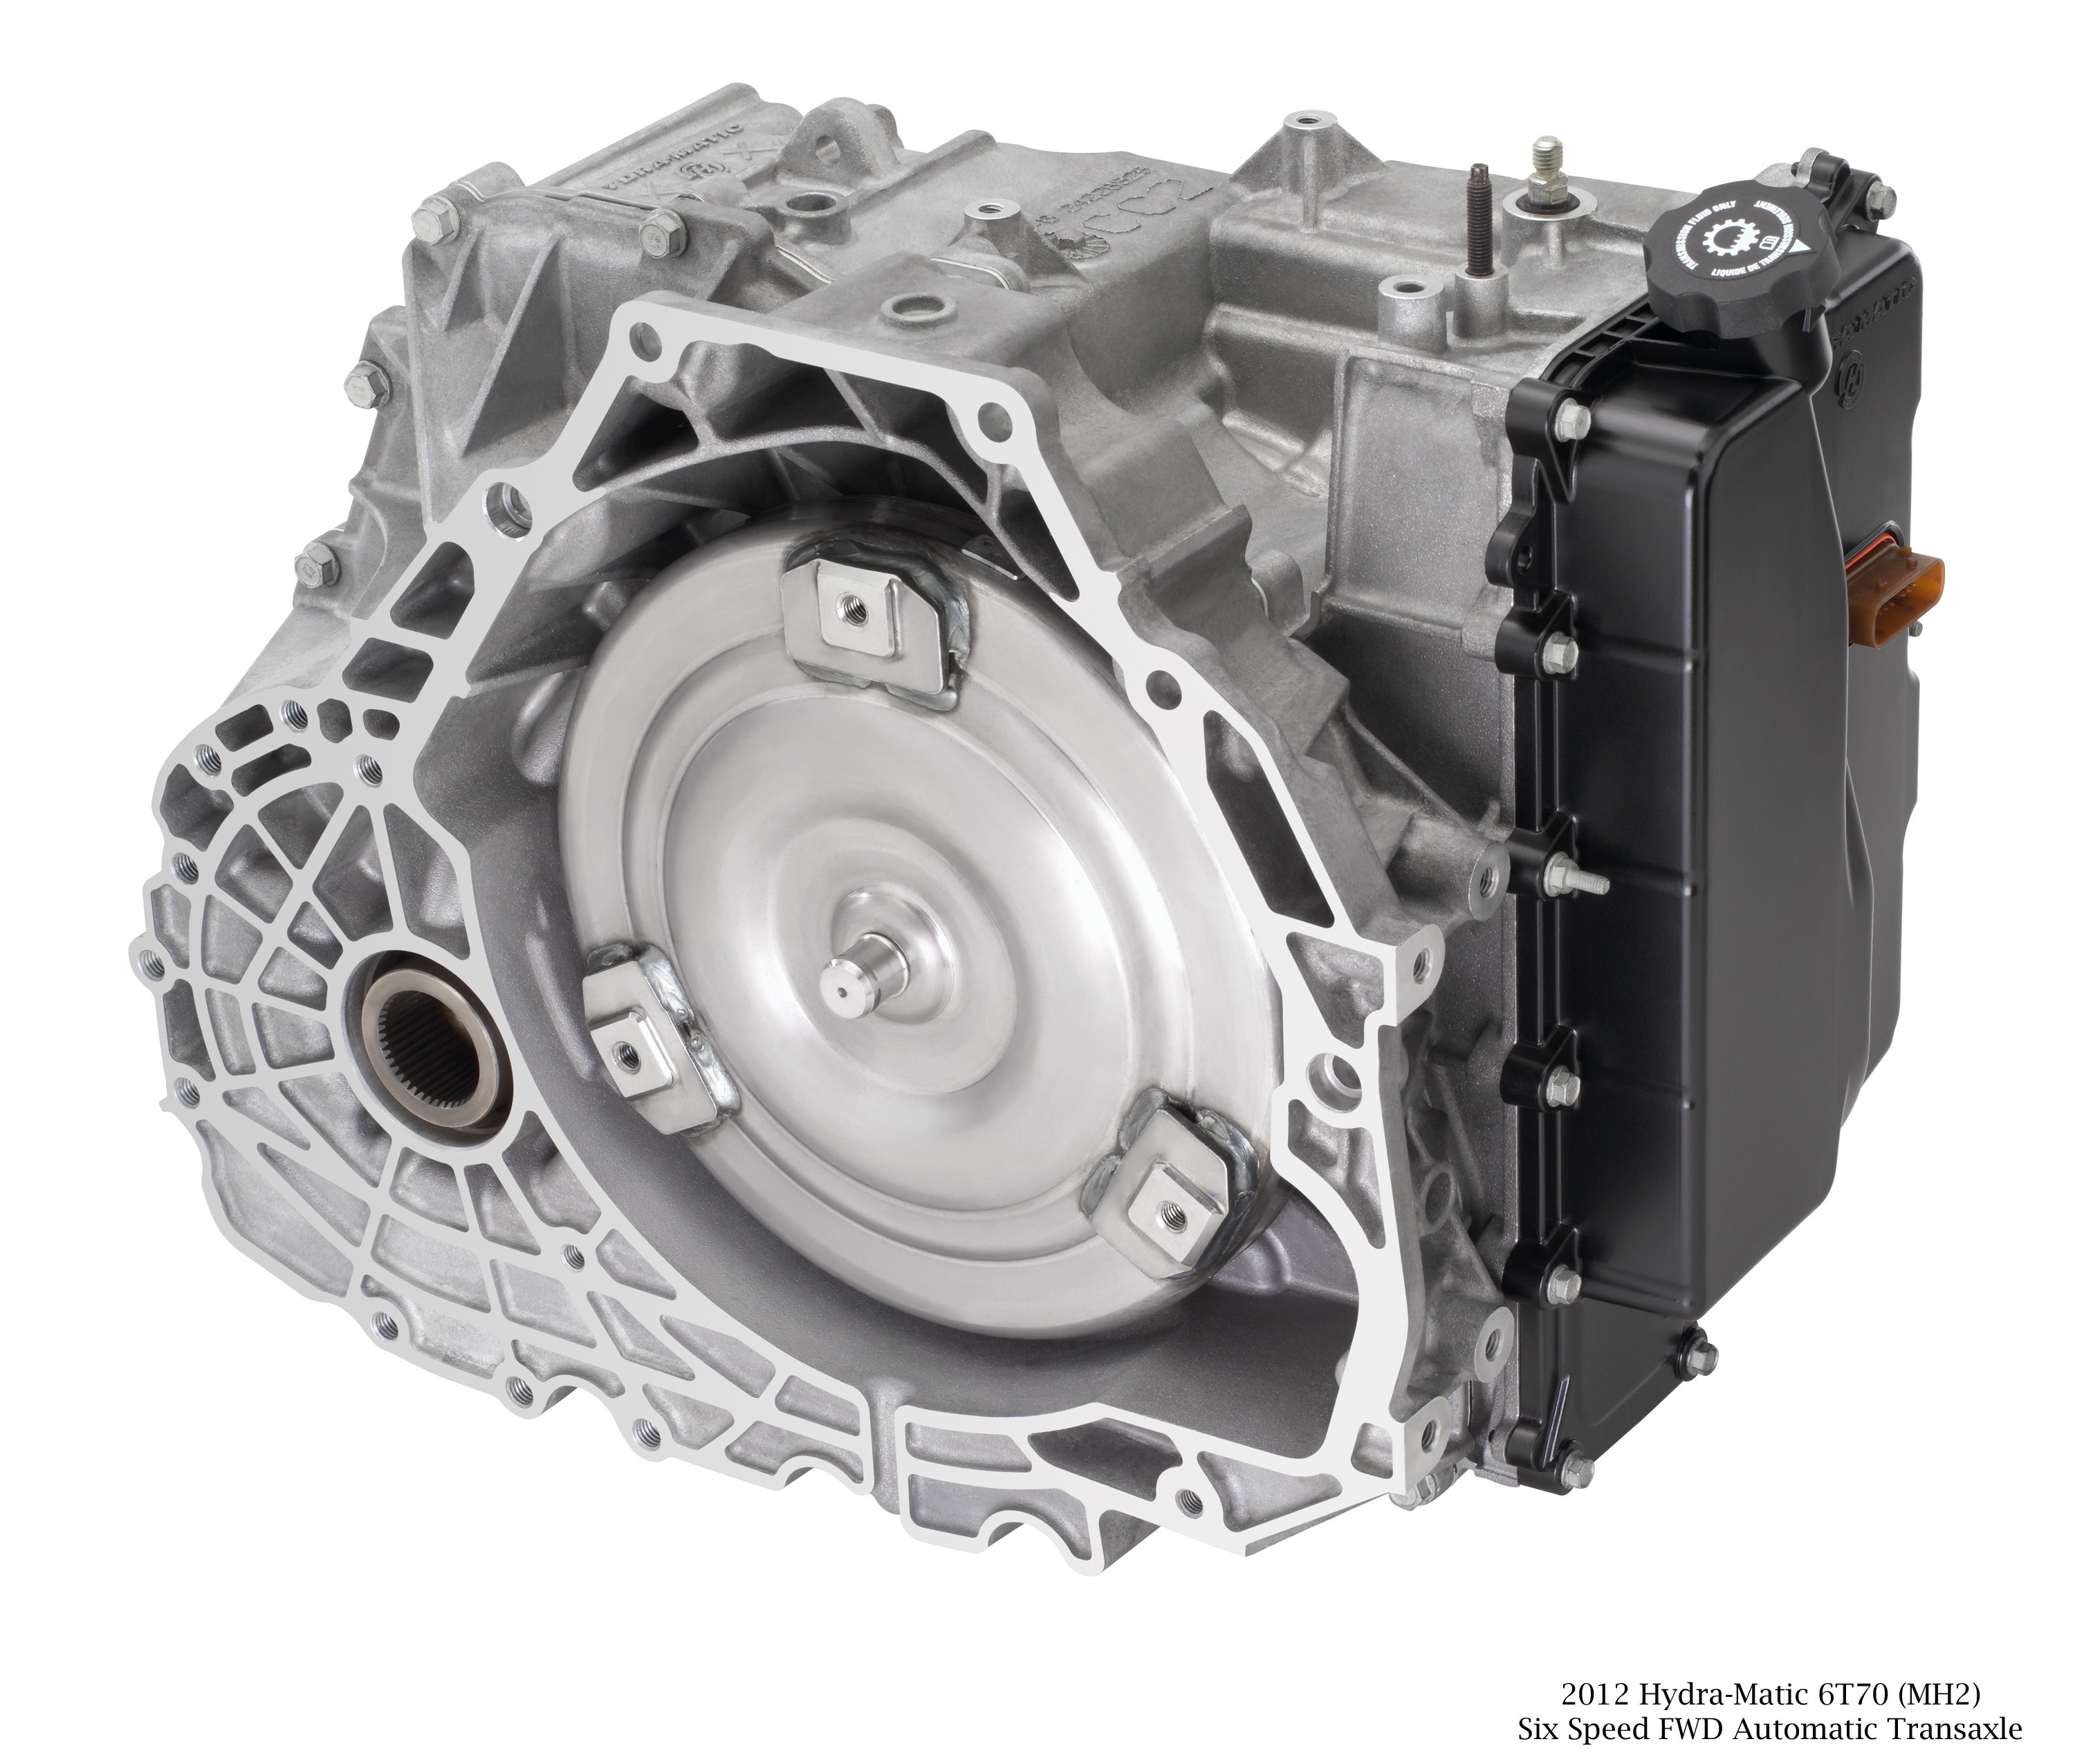 Gm And Ford To Jointly Develop Advanced Automatic Transmissions